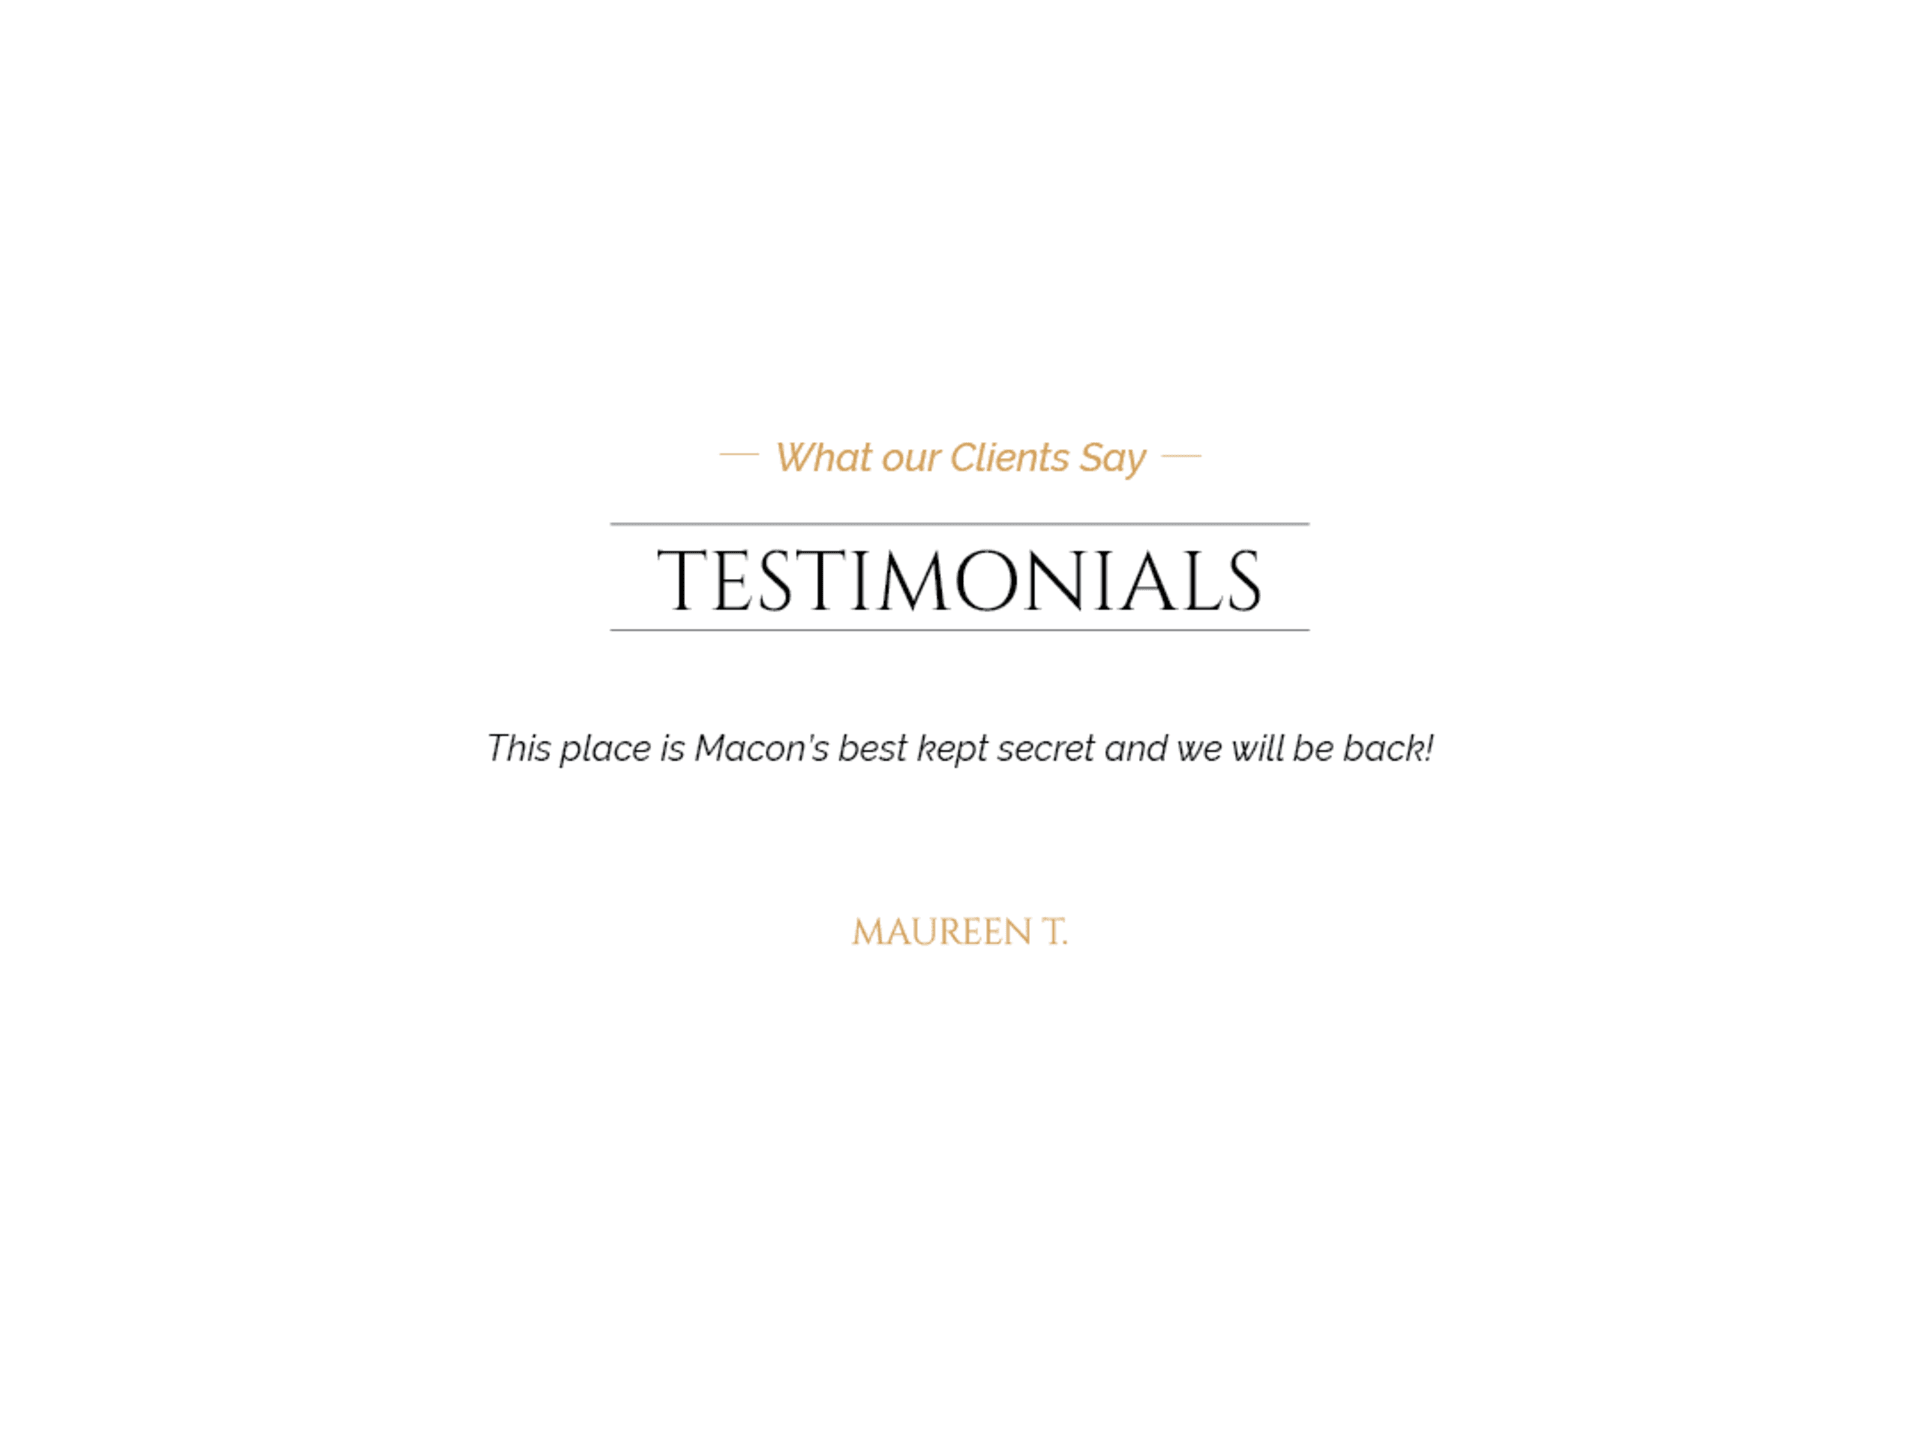 Client testimonial: This place is Macon's best kept secret and we will be back! From Maureen T